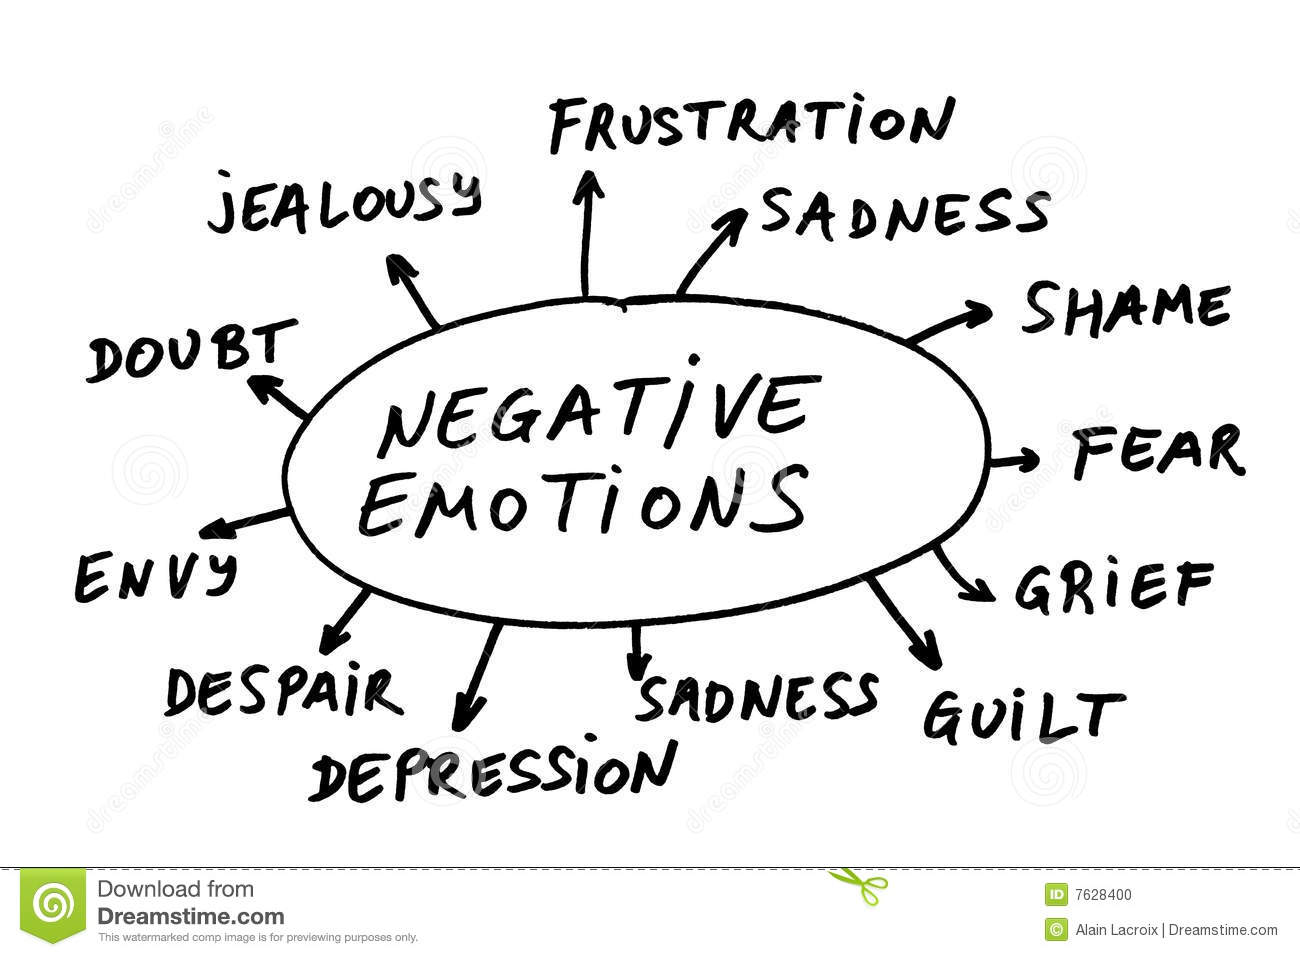 psy 220 positive and negative emotions Description psy 225 week 2 tracking positive and negative emotions psy 225 week 2 tracking positive and negative emotions psy 225 week 2 tracking positive and.